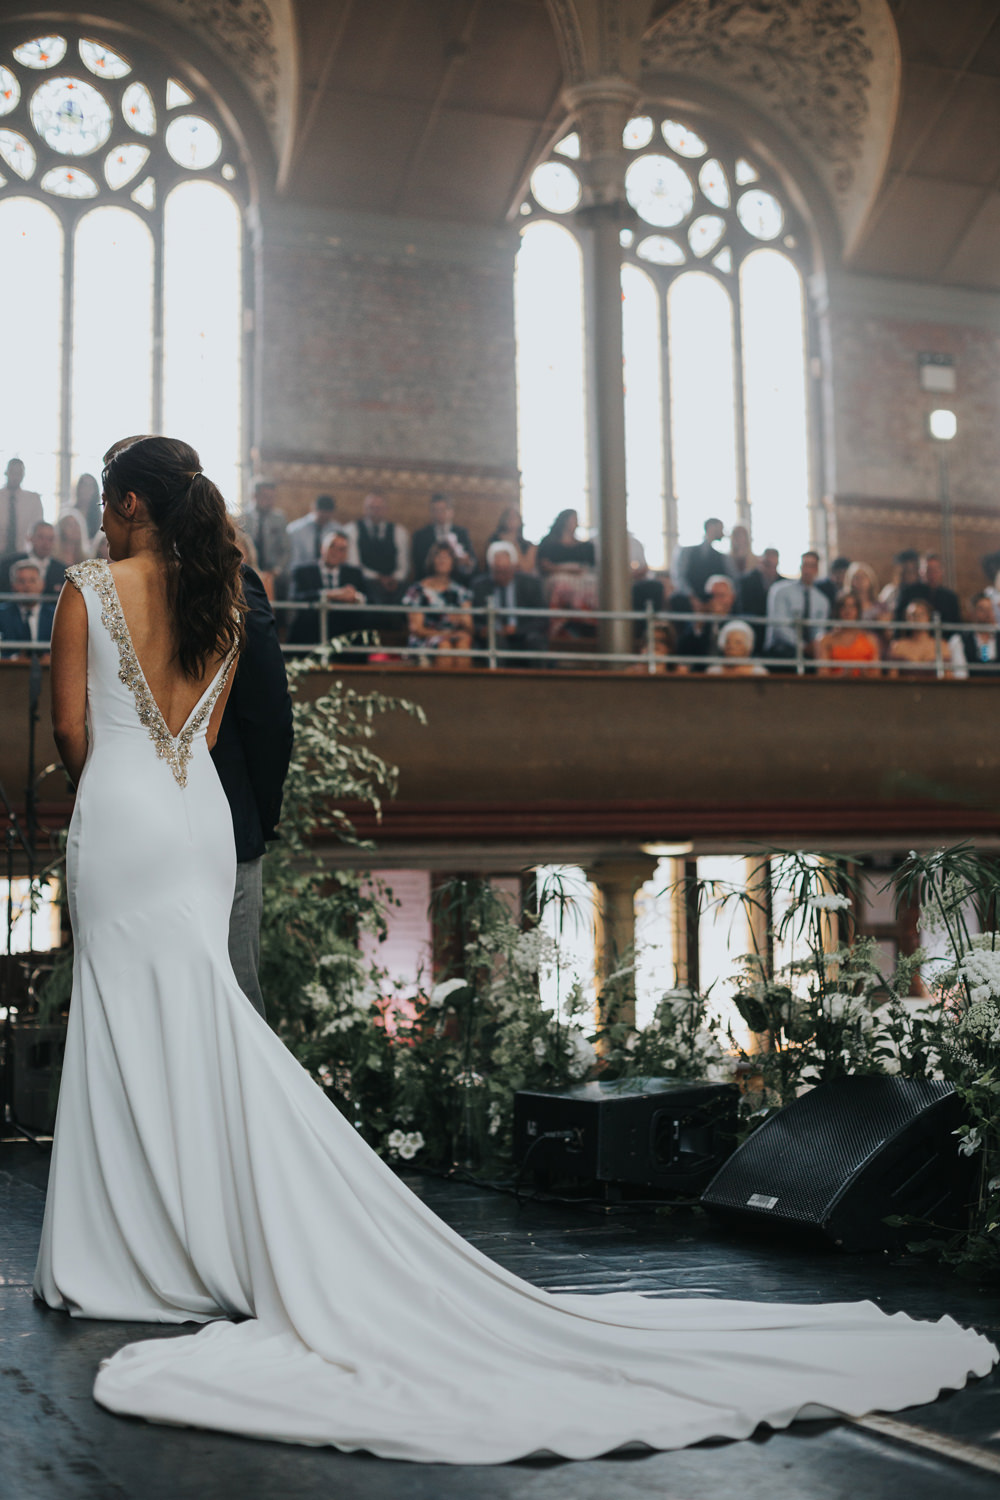 Pronovias Dress Gown Fit and Flare Embellished Sparkle Long Train Albert Hall Manchester Wedding Katie Dervin Photography